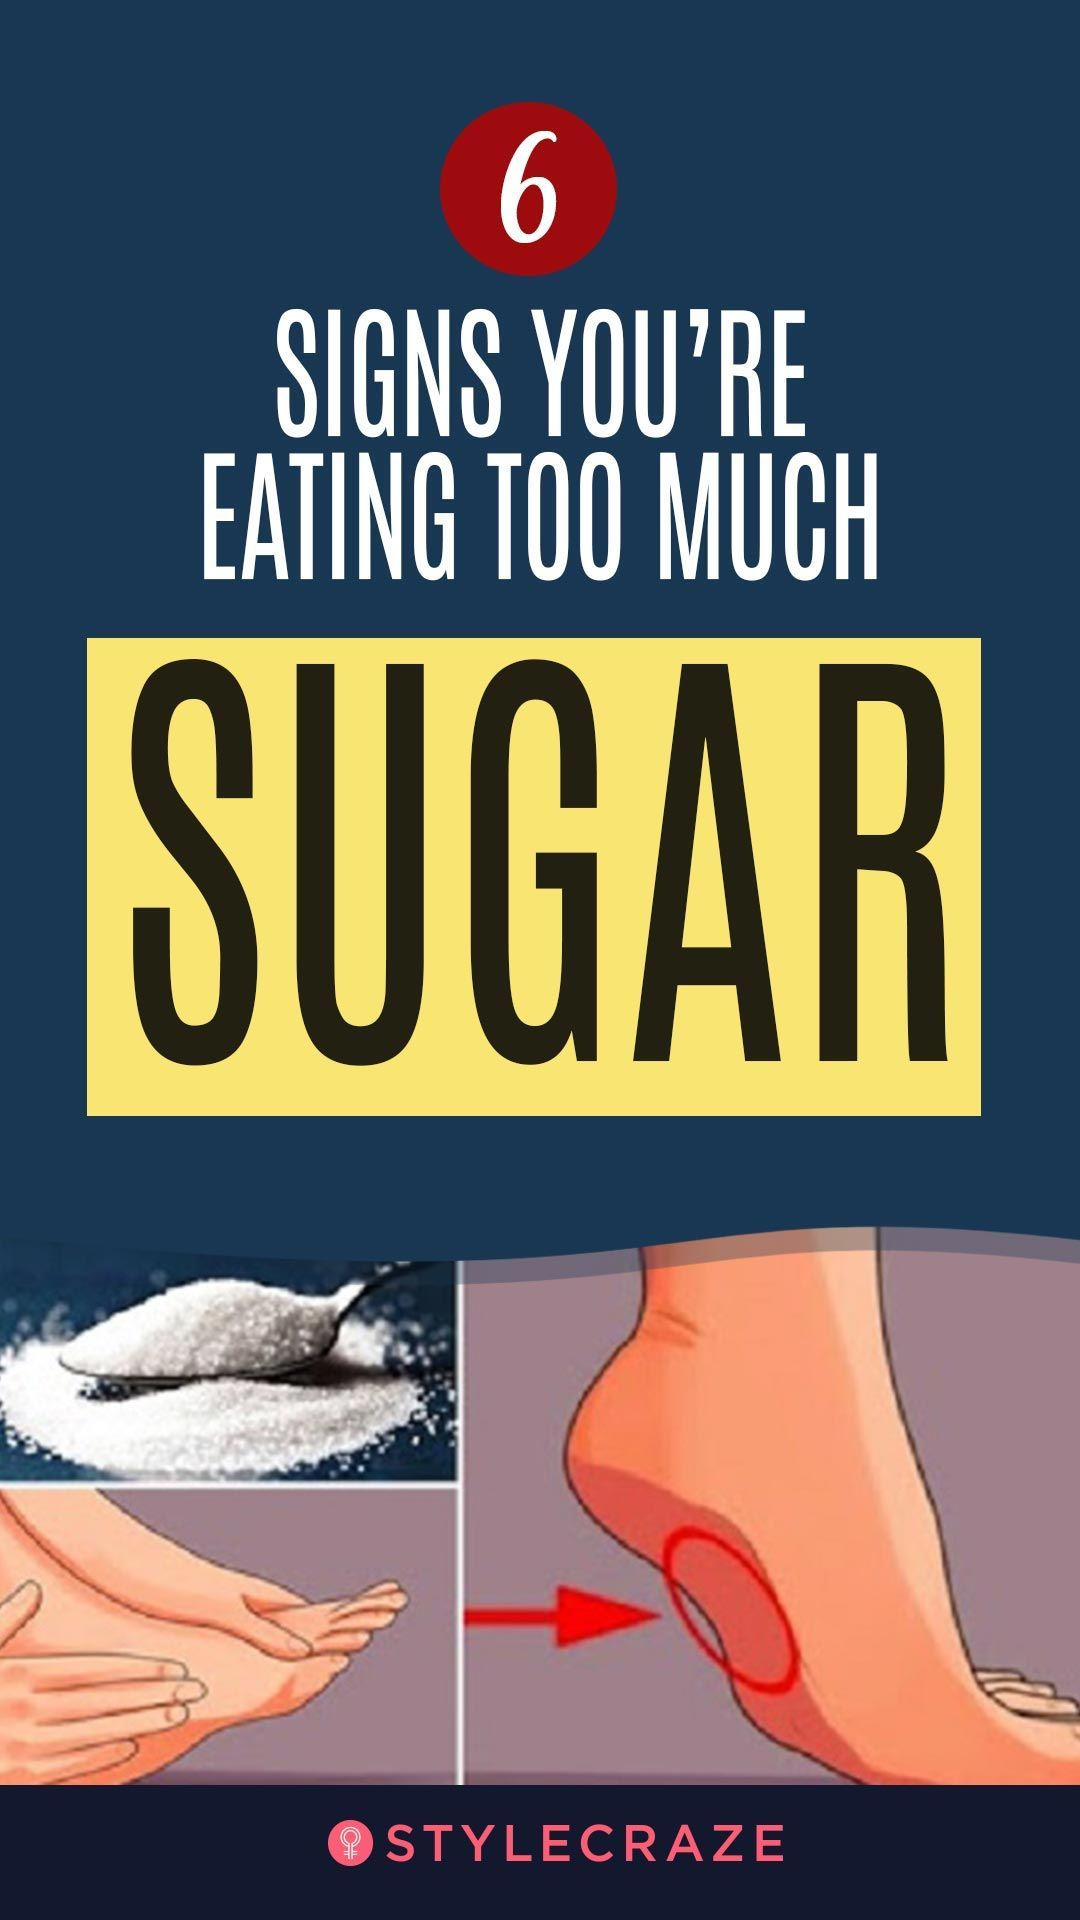 6 Signs You're Eating Too Much Sugar